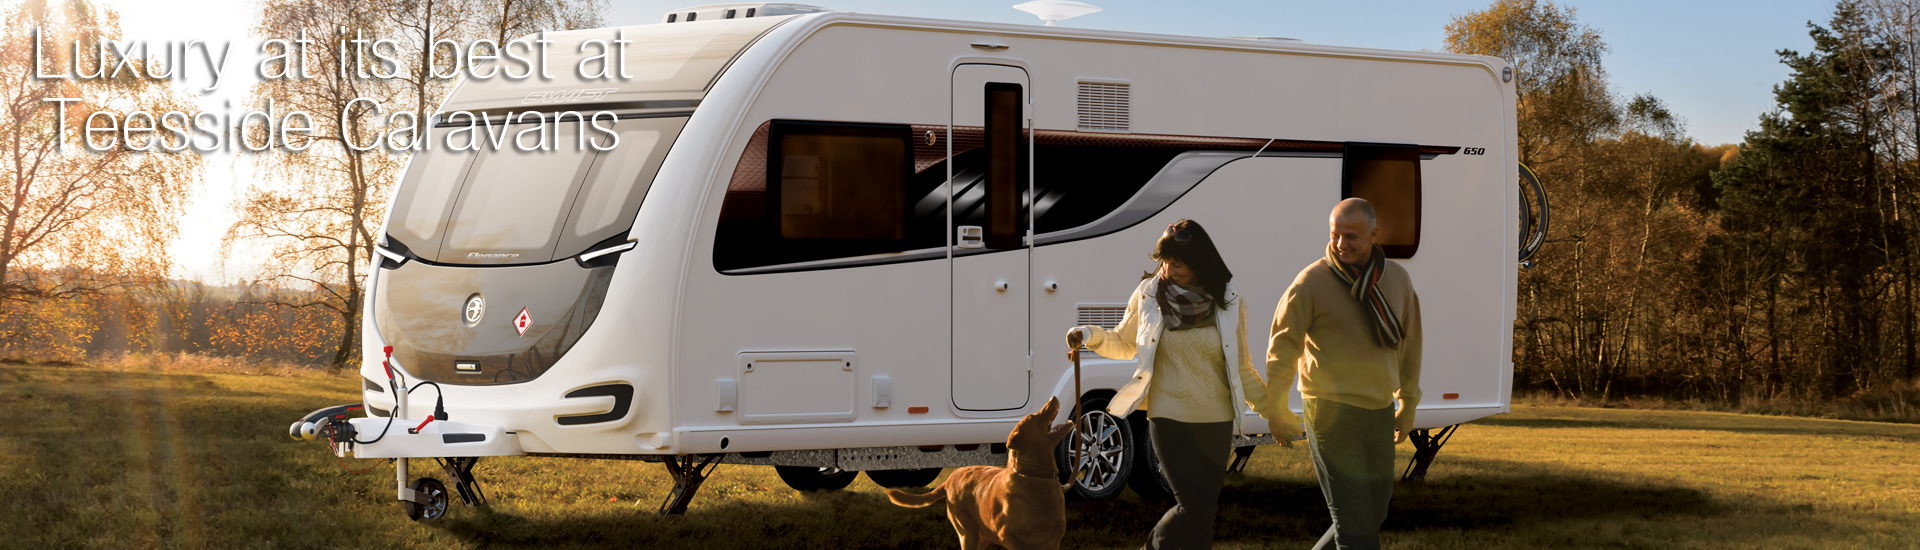 Luxury at its best at Teesside Caravans